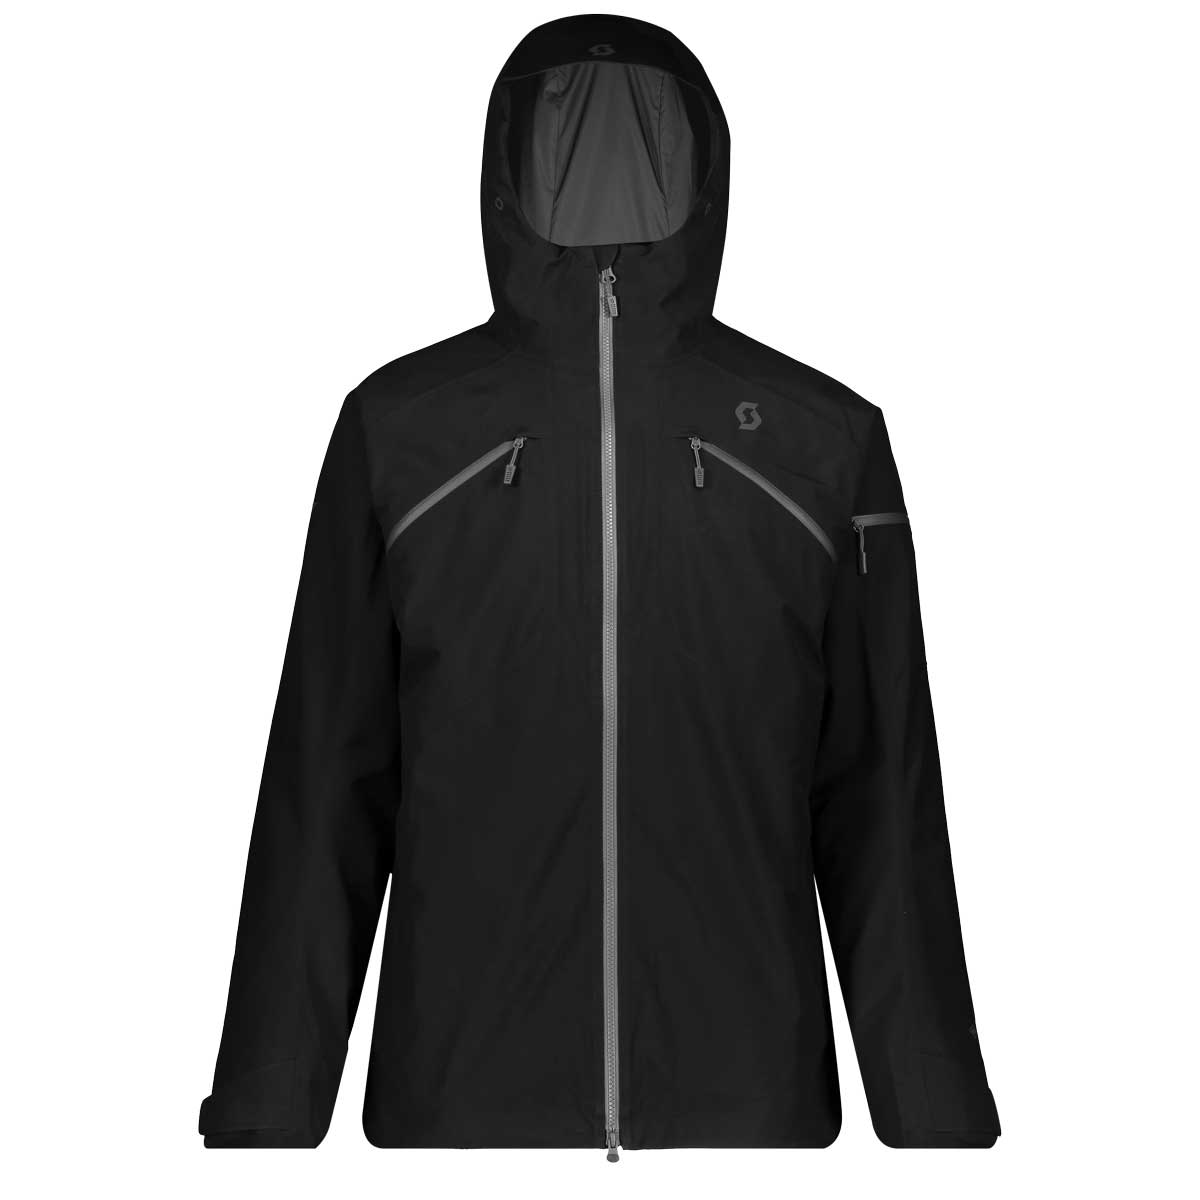 Scott men's Ultimate GTX 3-in-1 jacket in Black and Dark Grey Melange